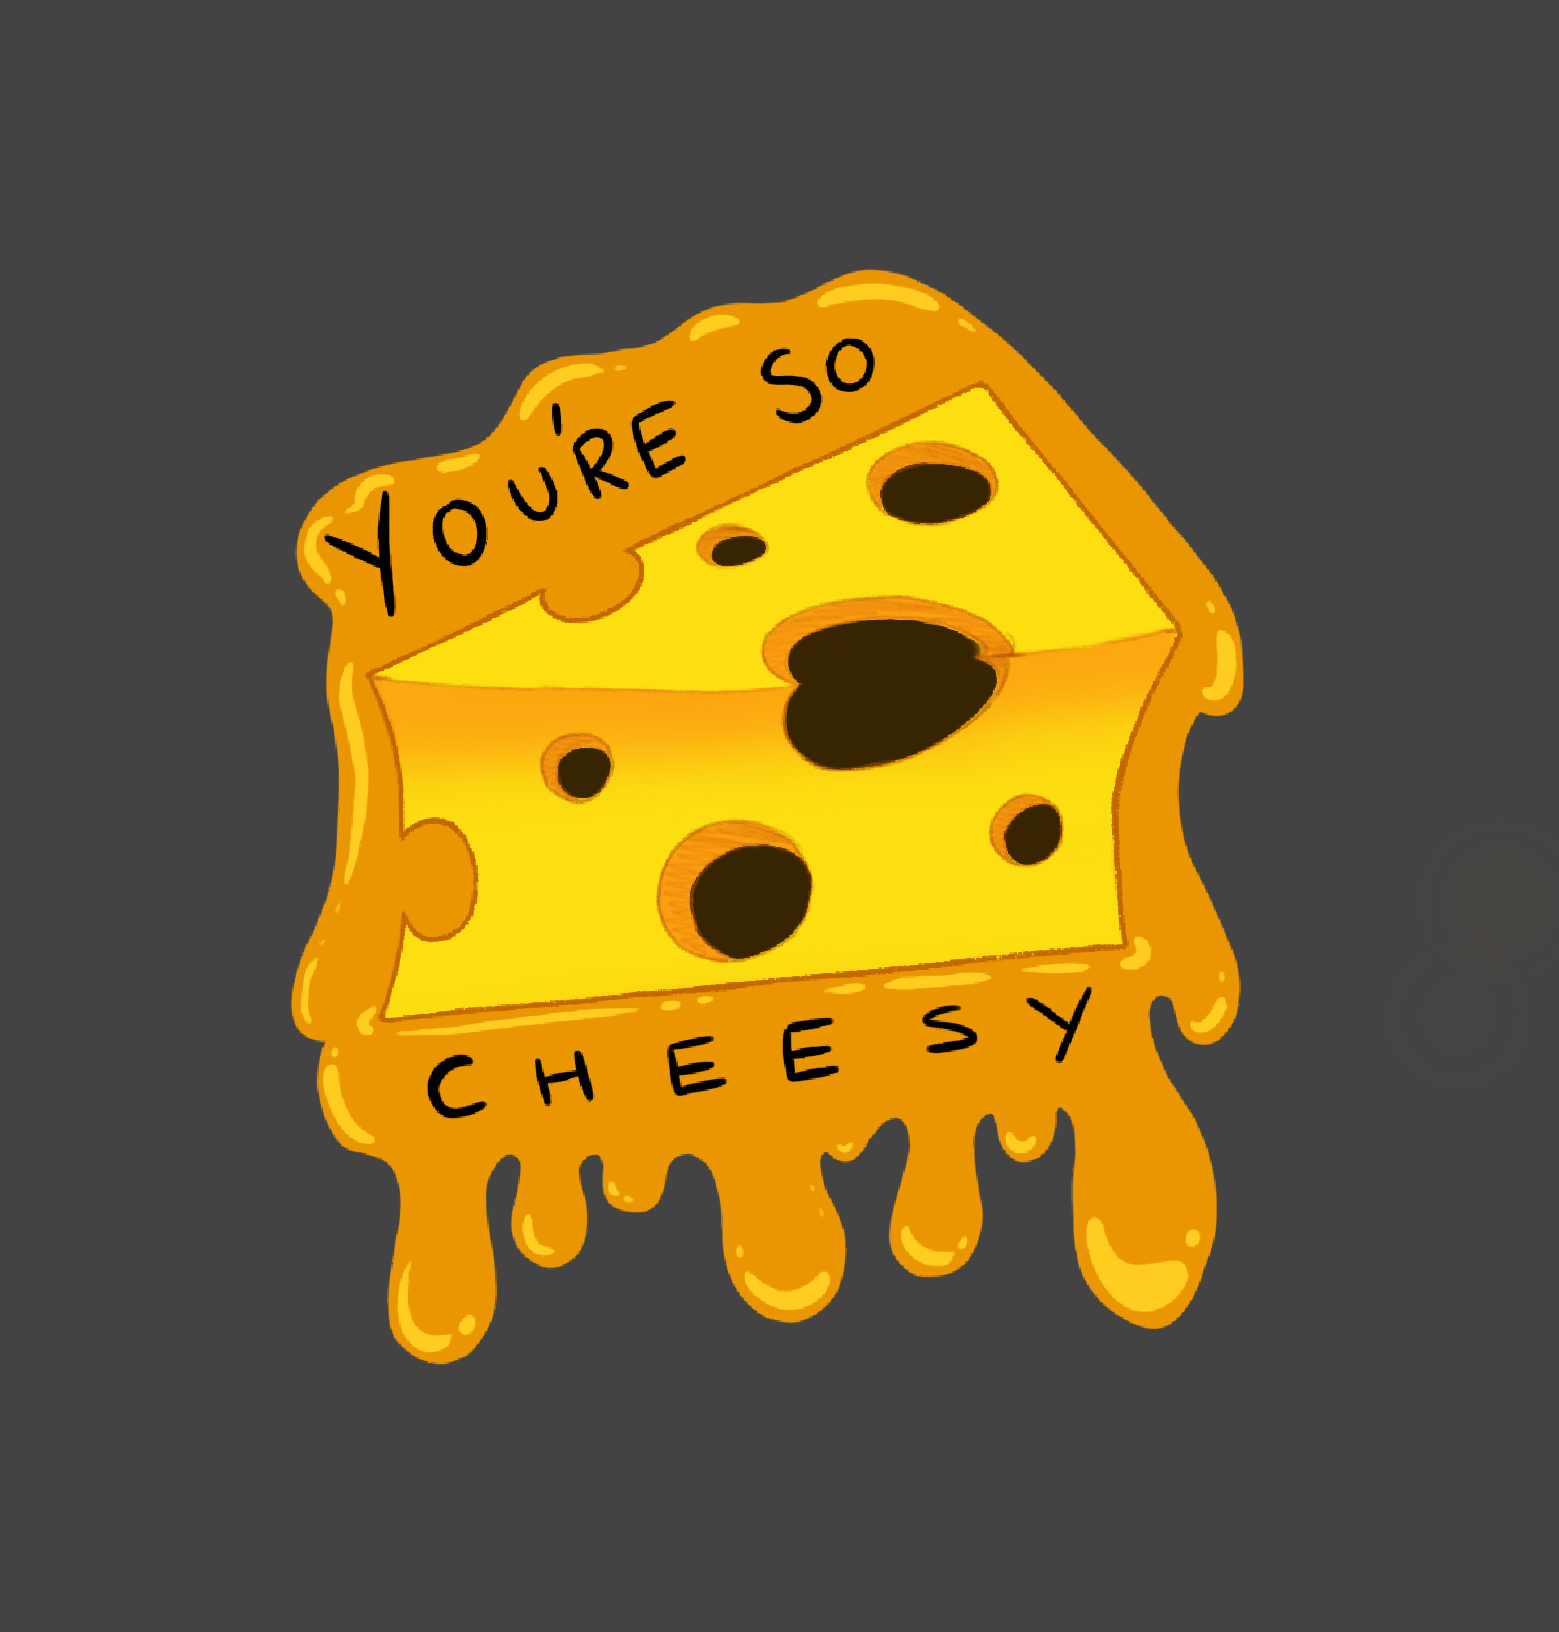 So Cheesy A4 Print